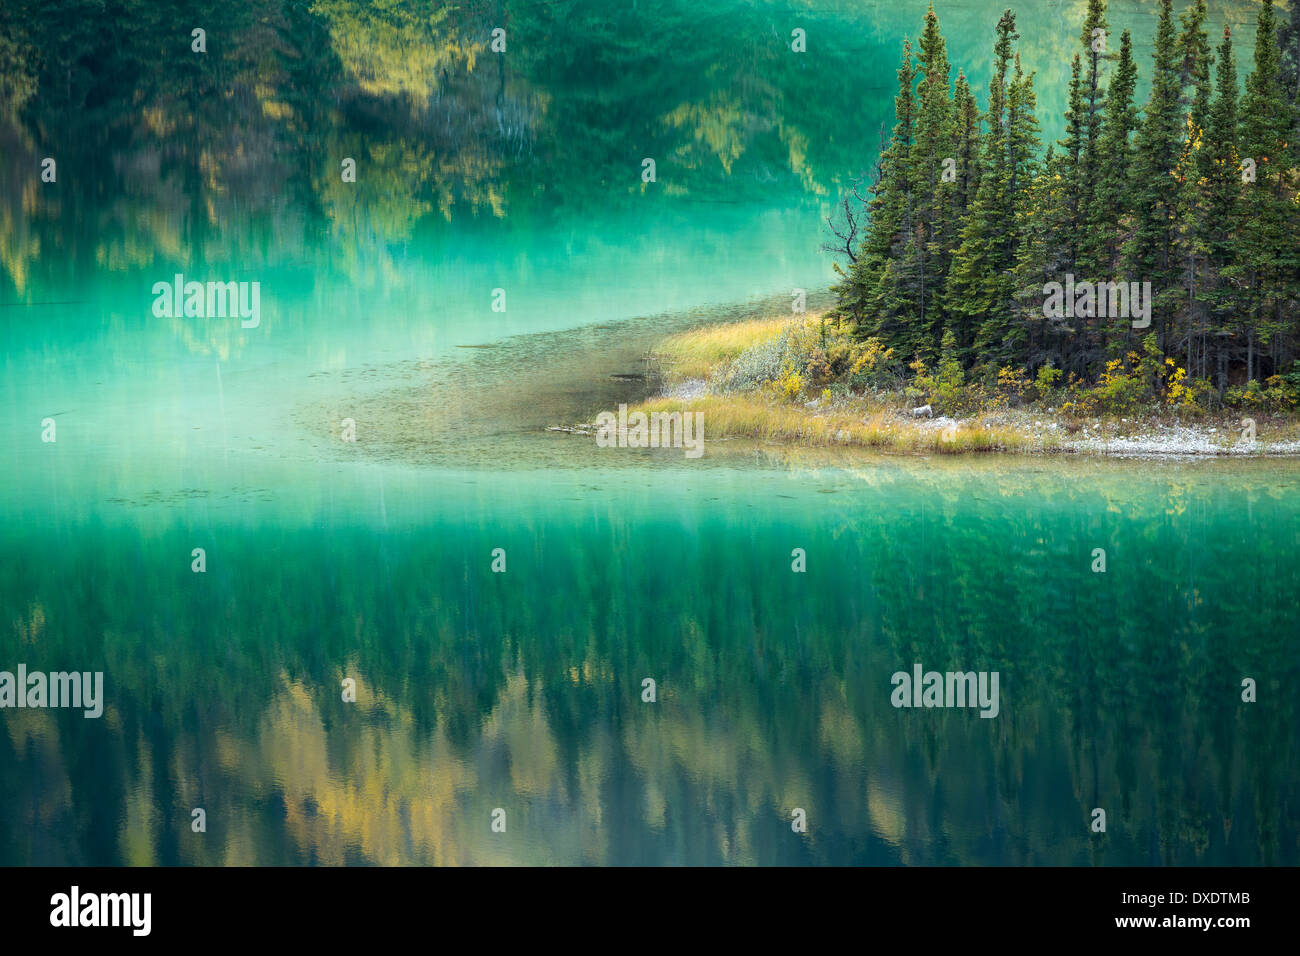 Emerald Lake, nr Carcross, Yukon Territories, Canada - Stock Image